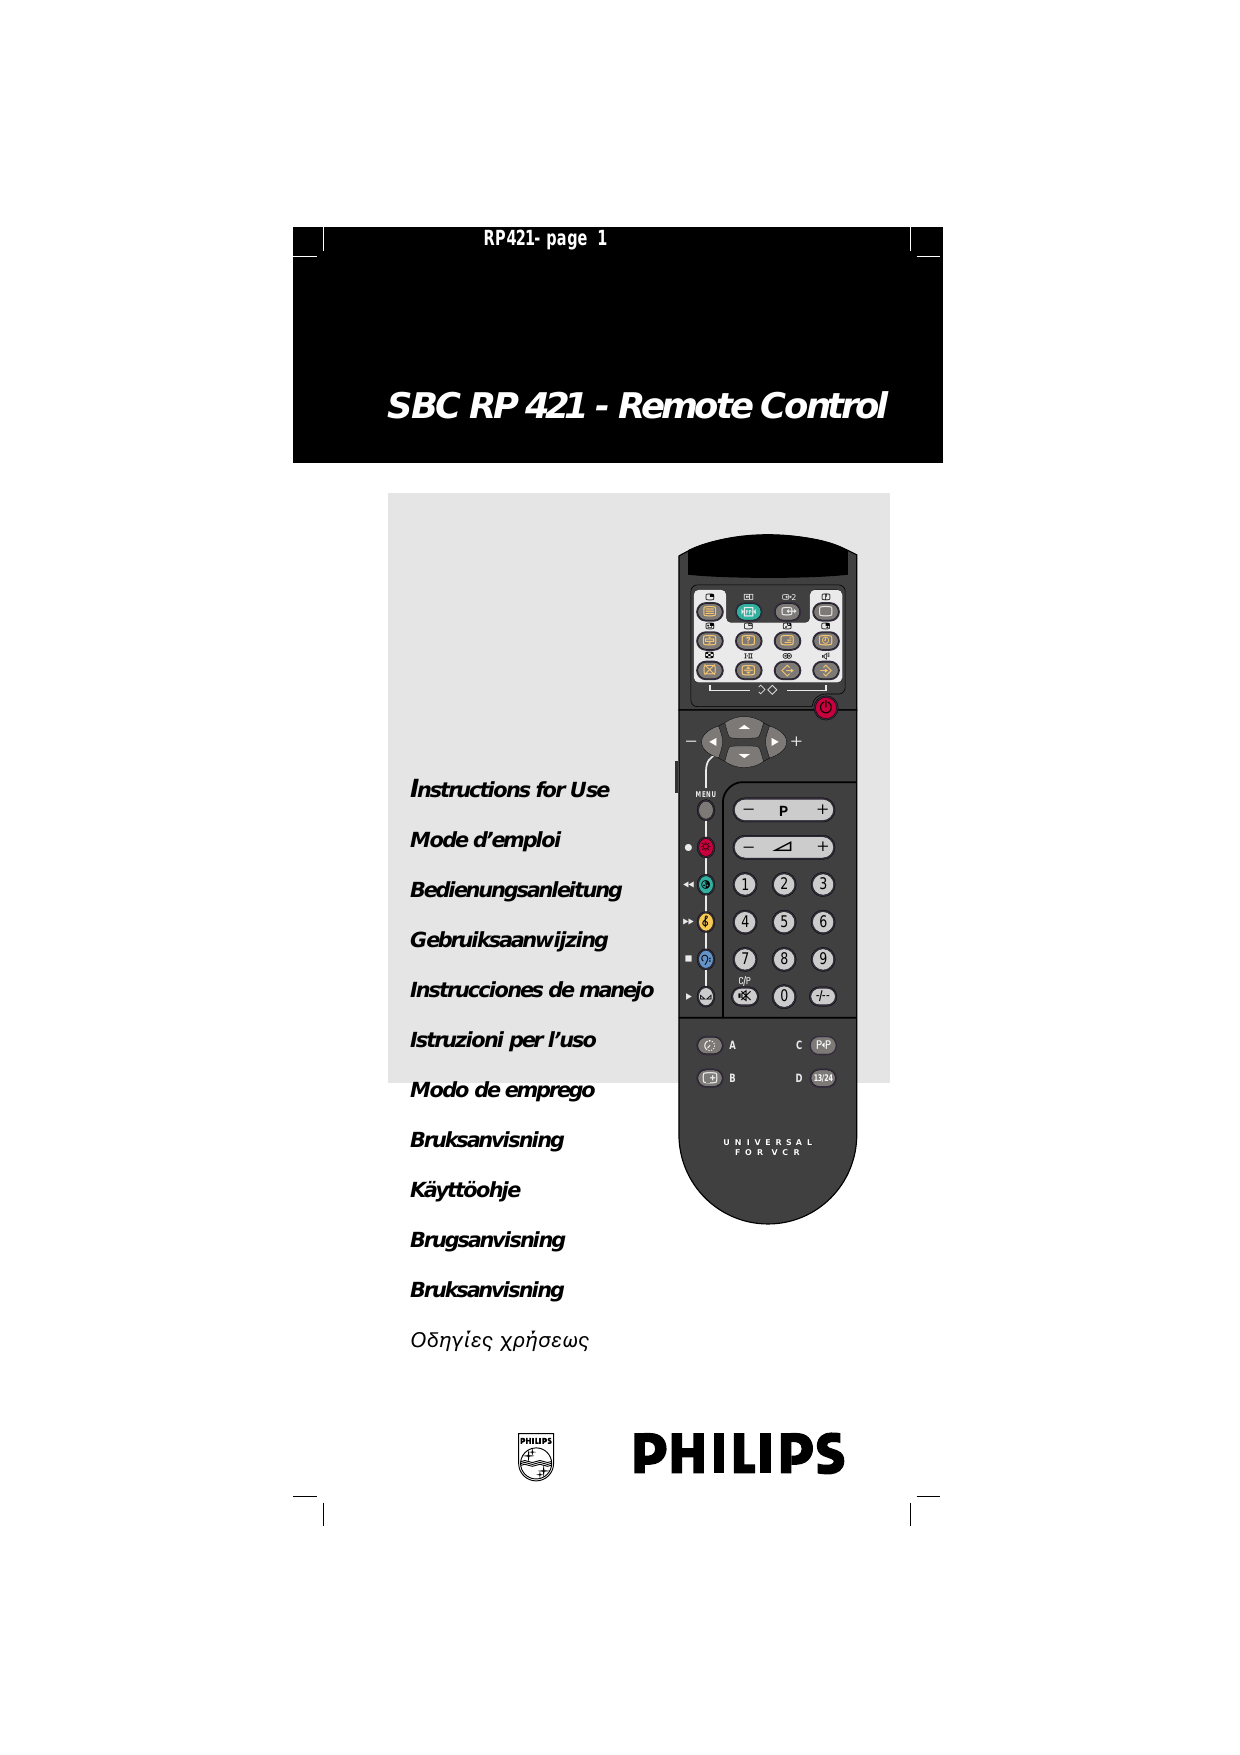 philips universal remote user manual